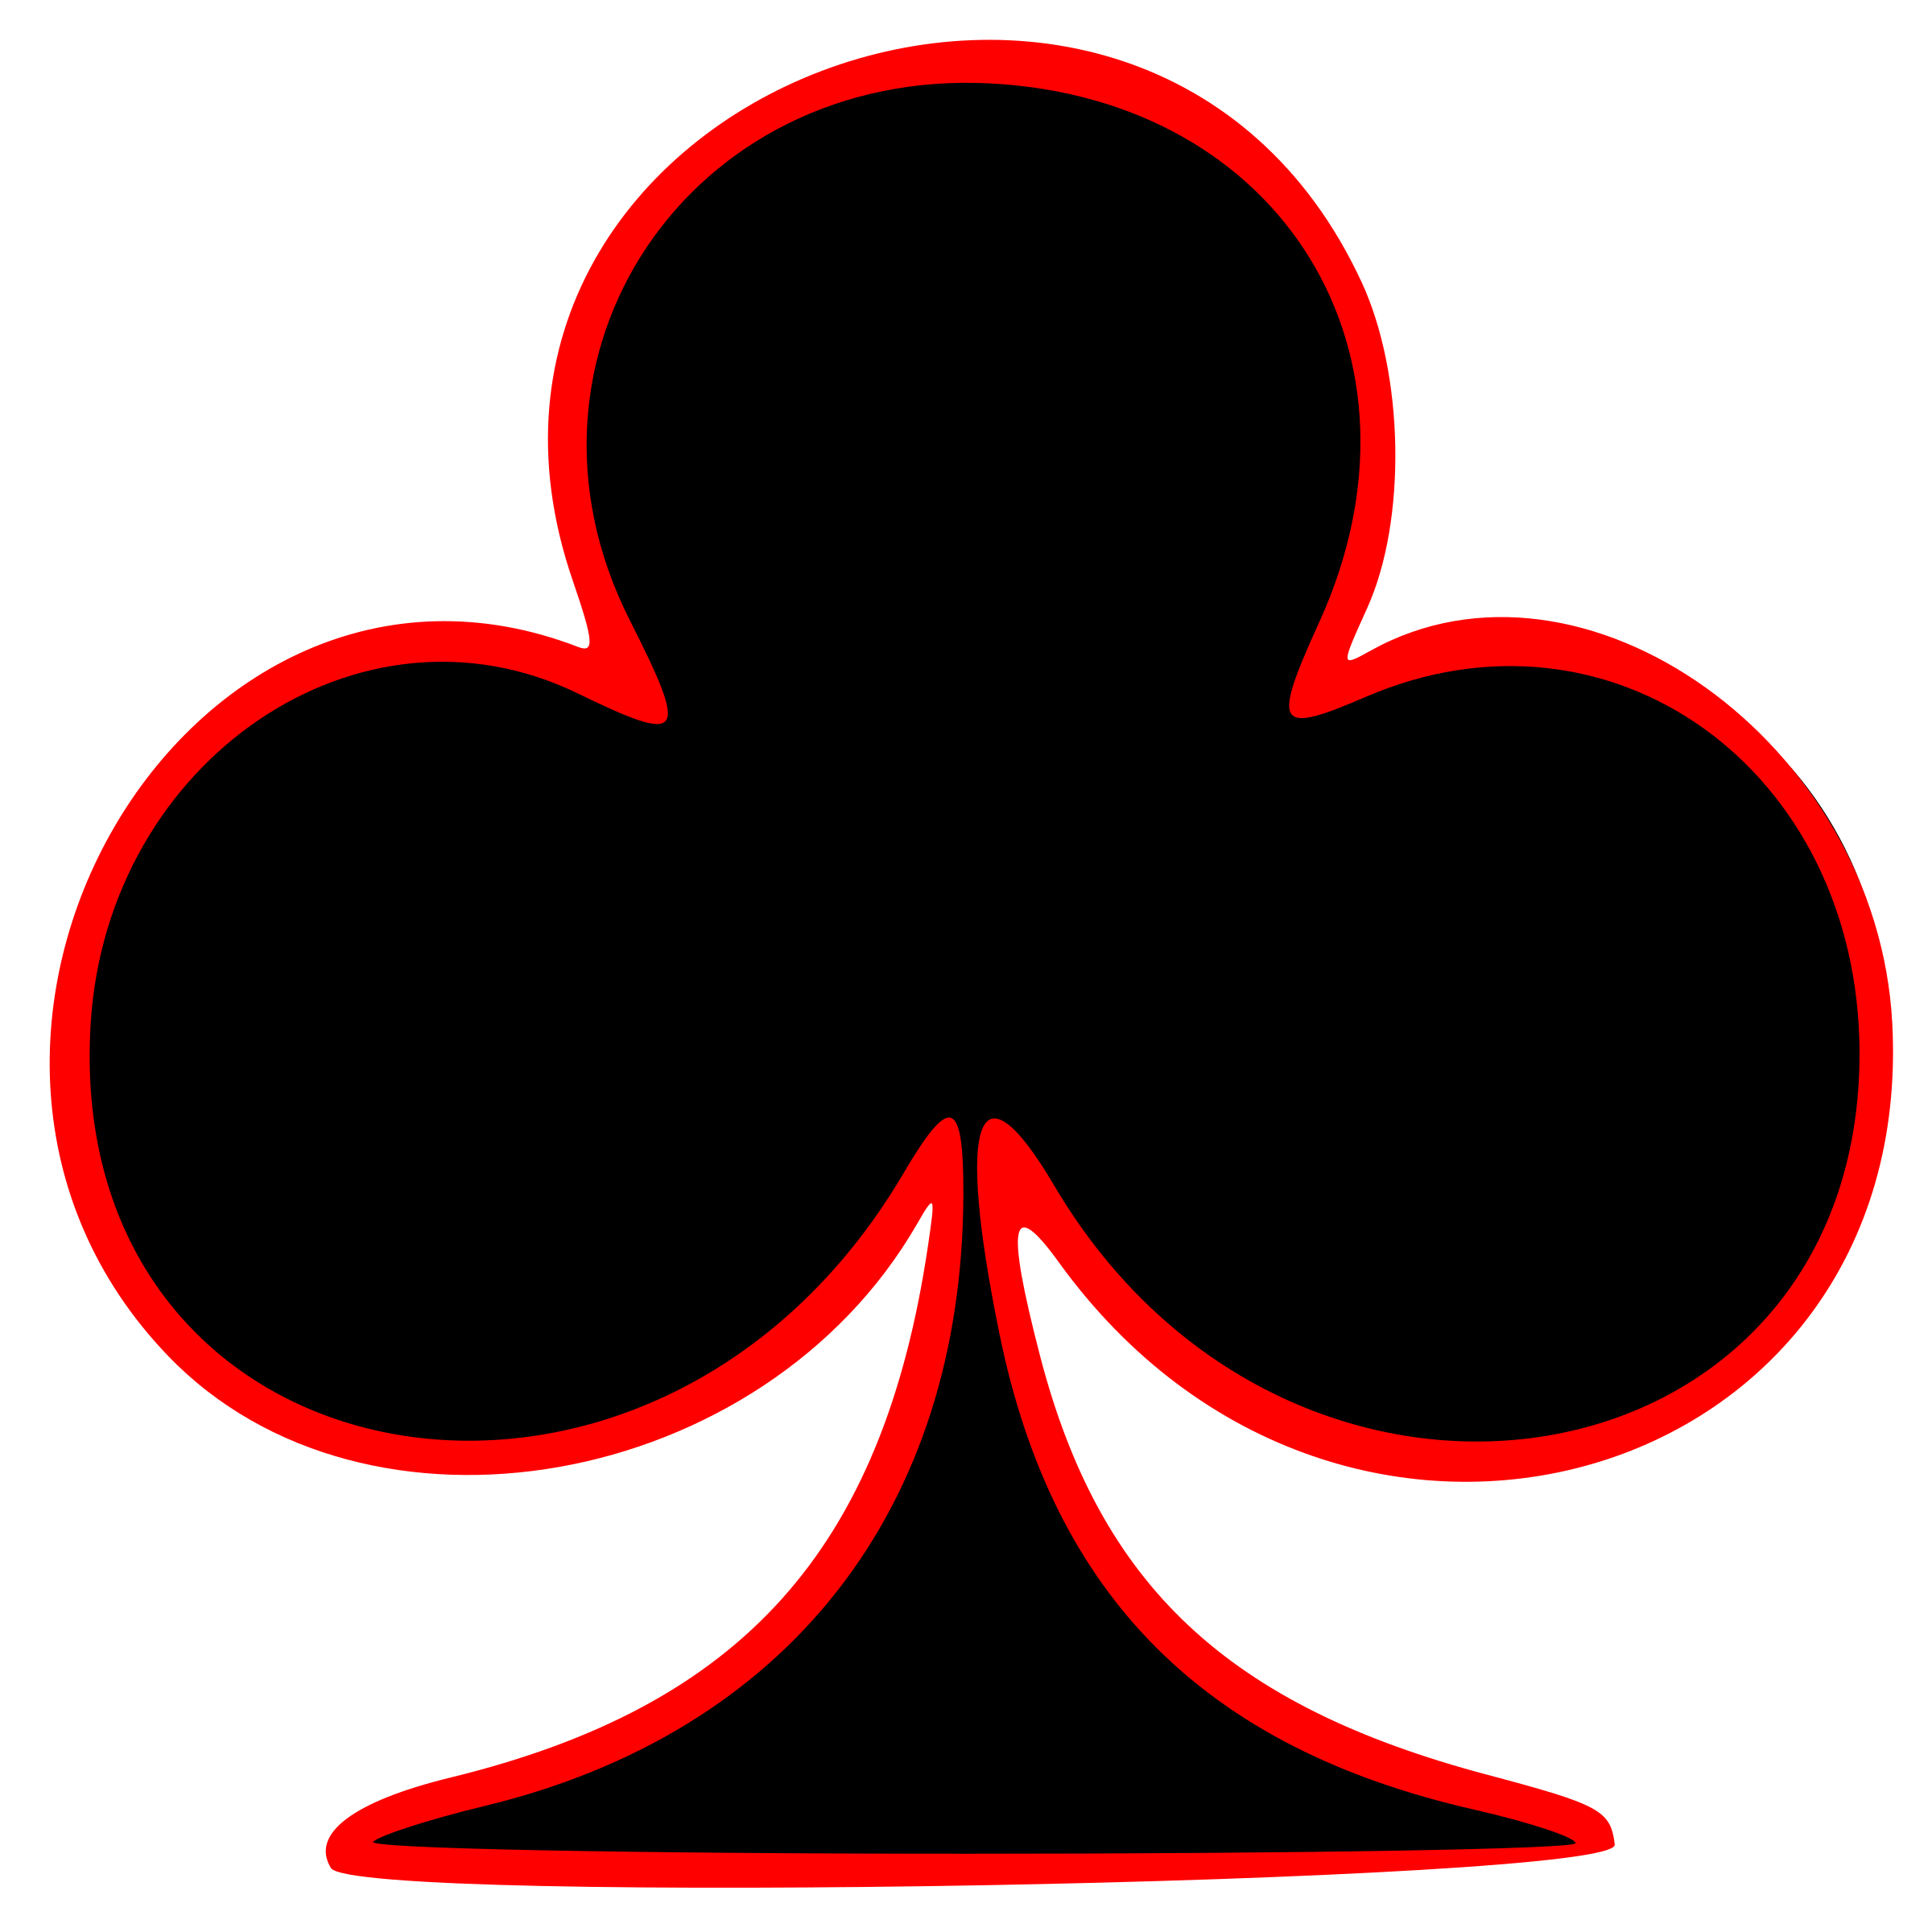 Outlined playing big image. Club clipart card symbol